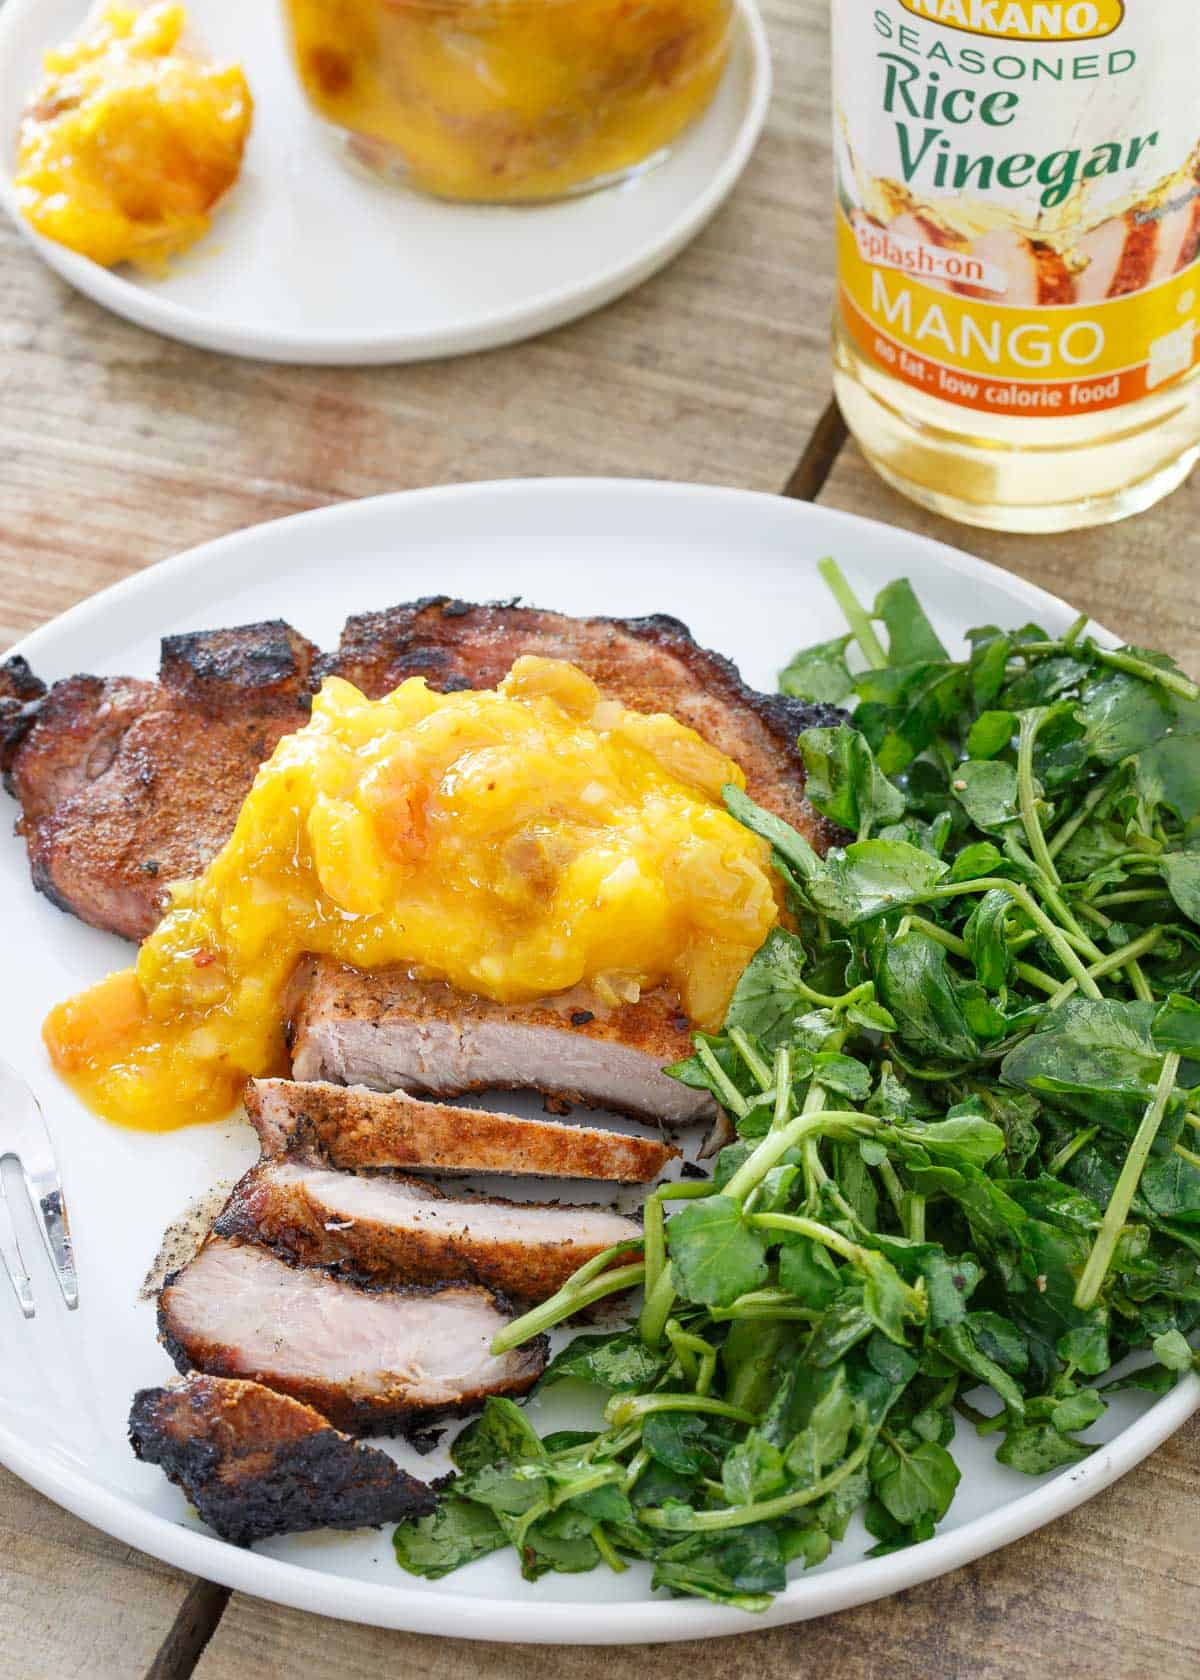 These grilled Spice Rubbed Pork Chops pair perfectly with the sweet mango peach chutney.